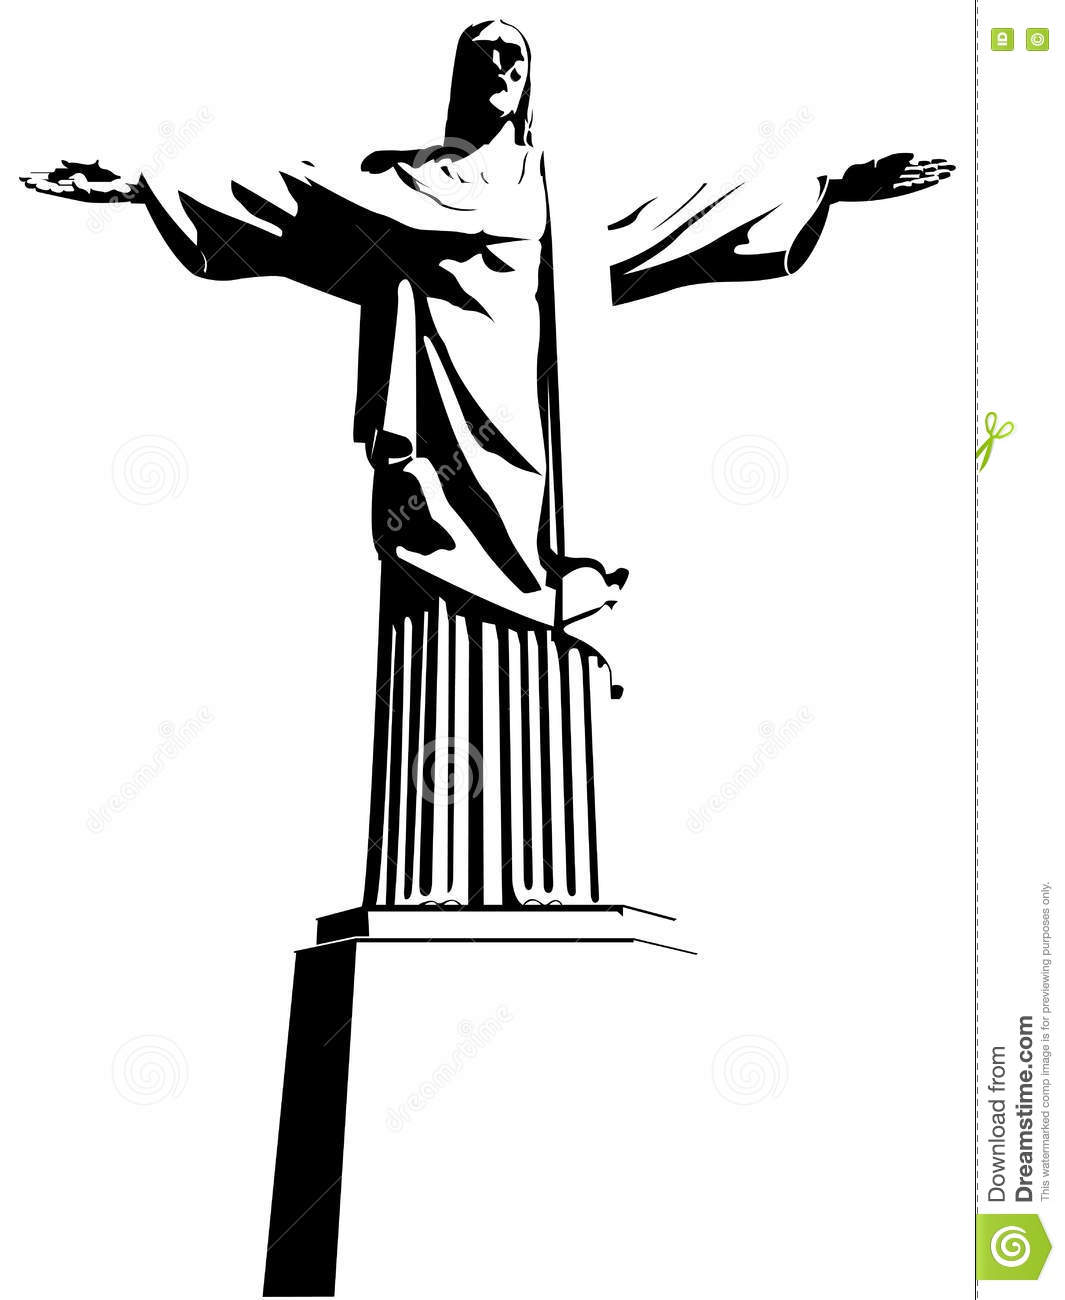 Cristo Redentor (Christ the Redeemer) in Rio de Janeiro / Brazil. Drawing in black and white.